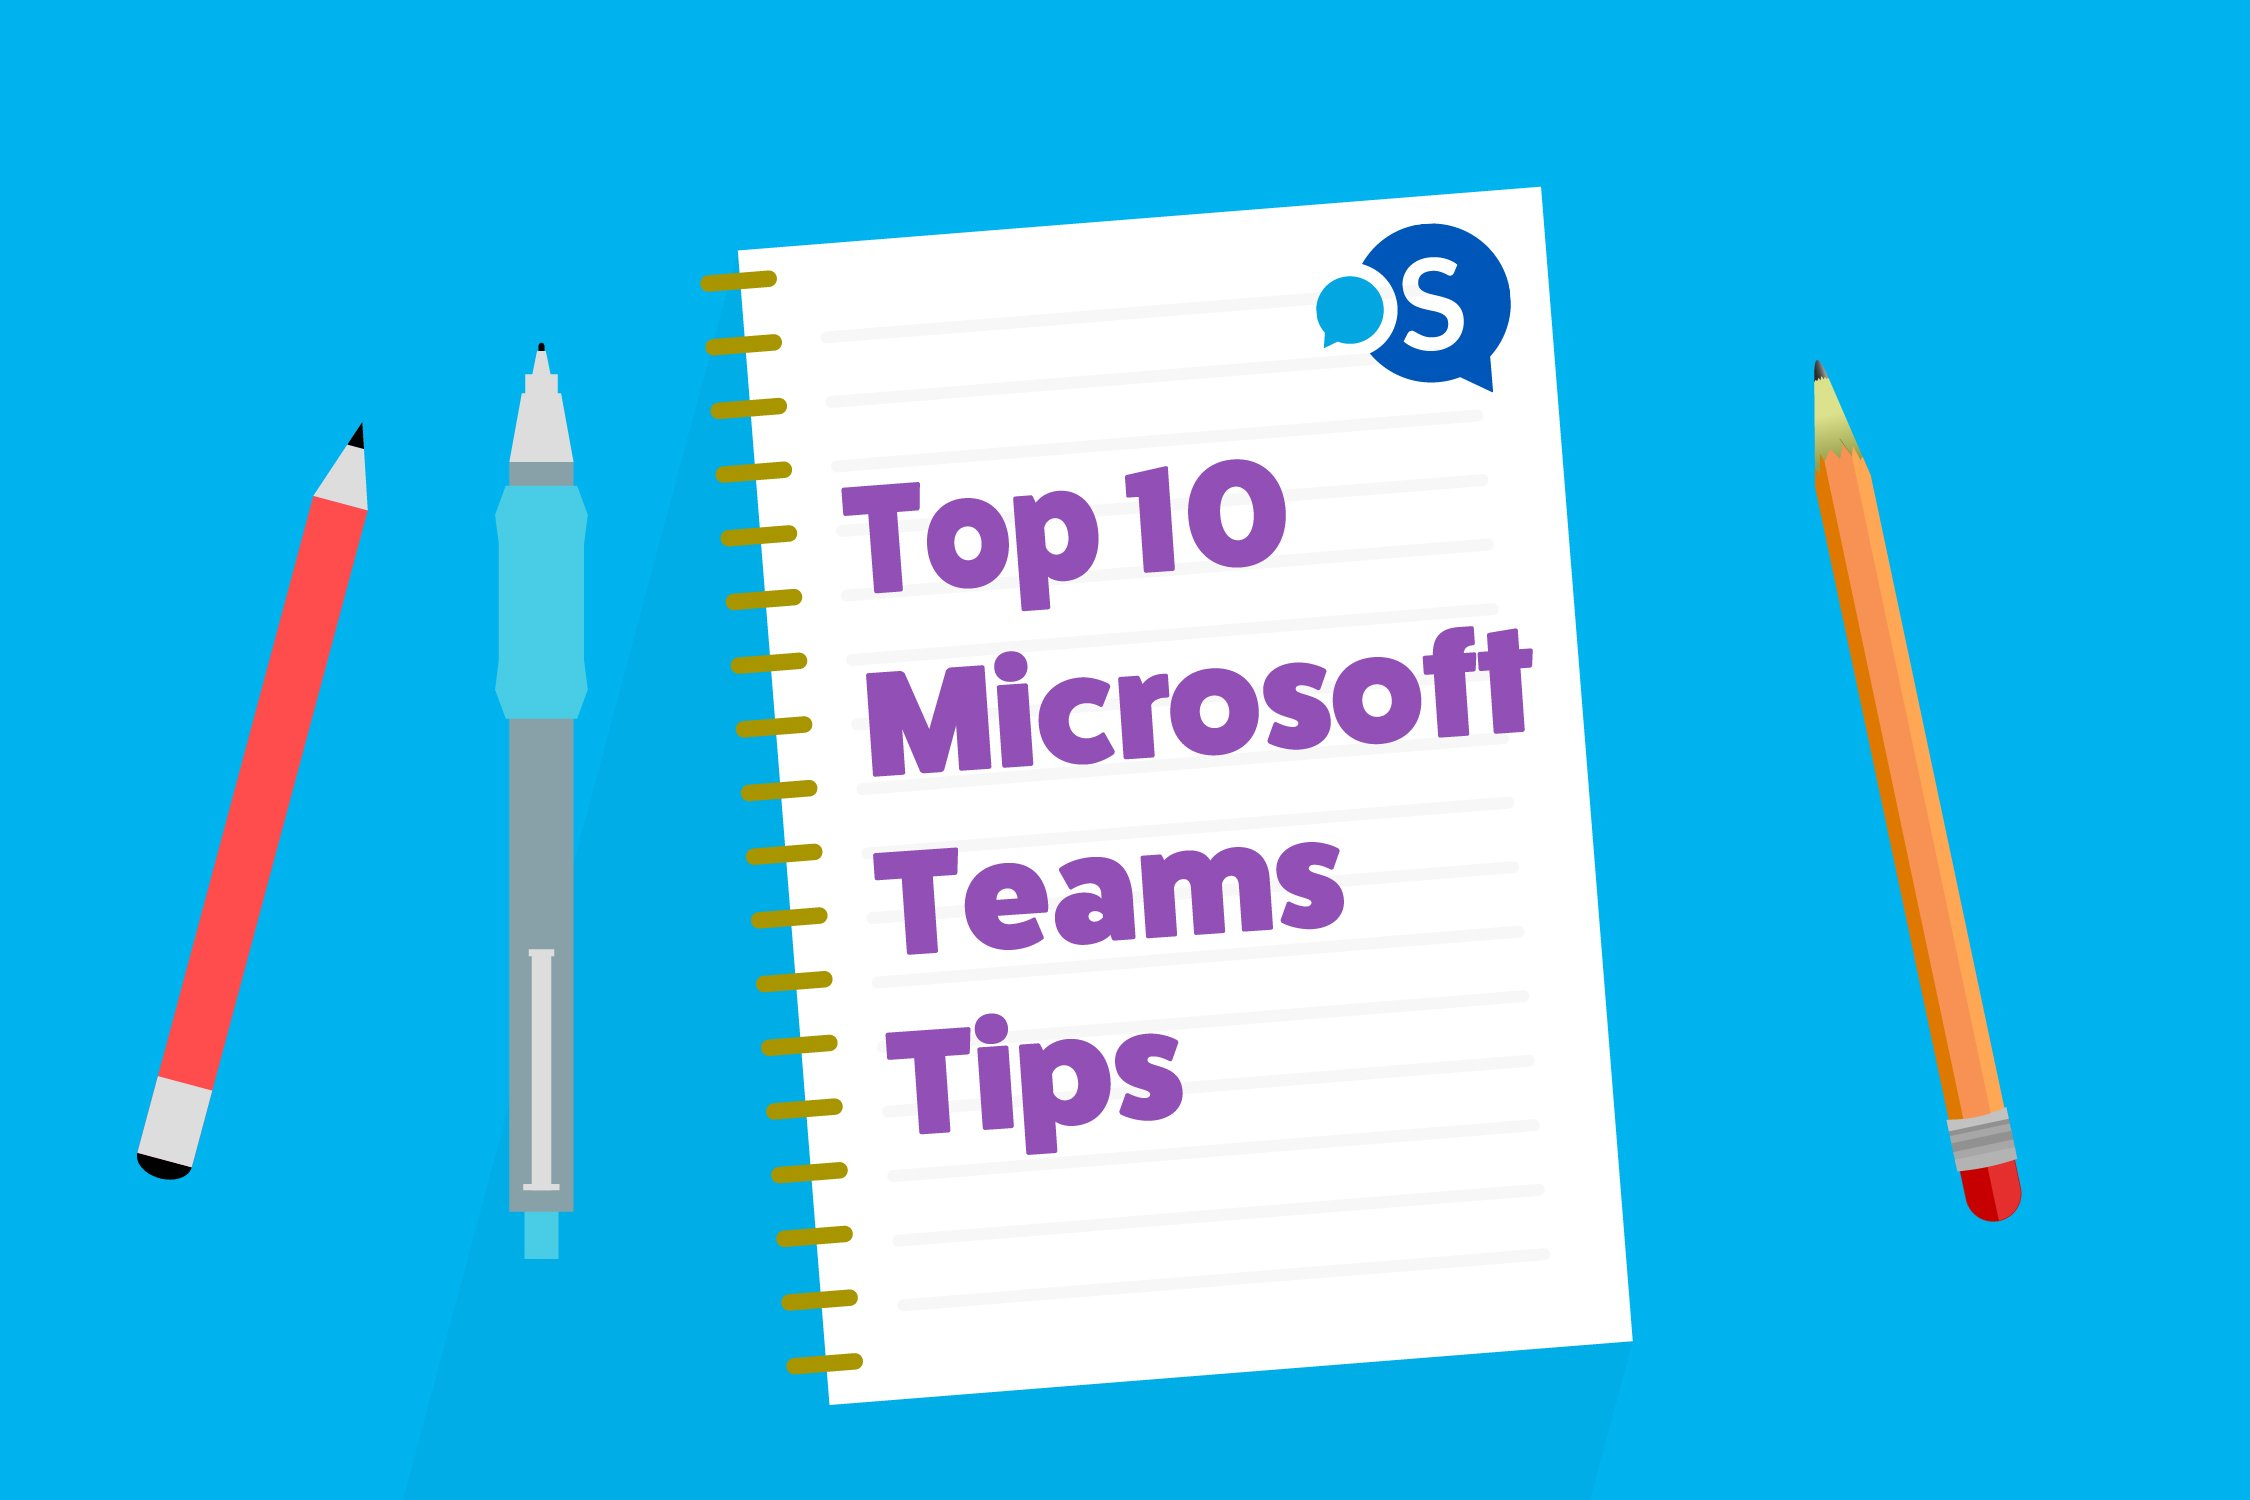 Top 10 tips for Microsoft Teams: Insider tips from the OSIT Team